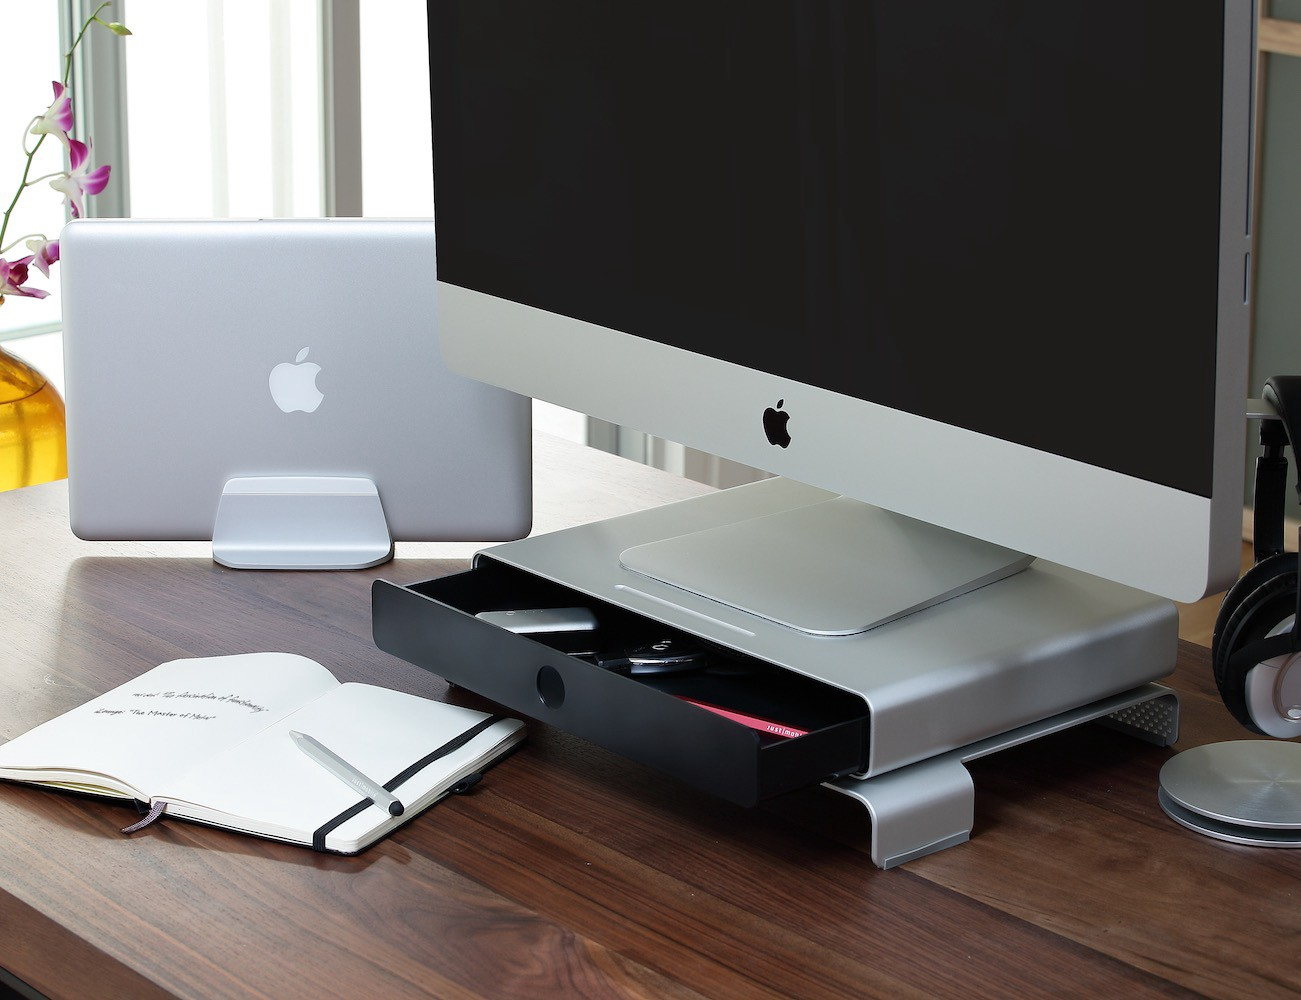 12 Work Desk Accessories That Will Enhance Your Productivity